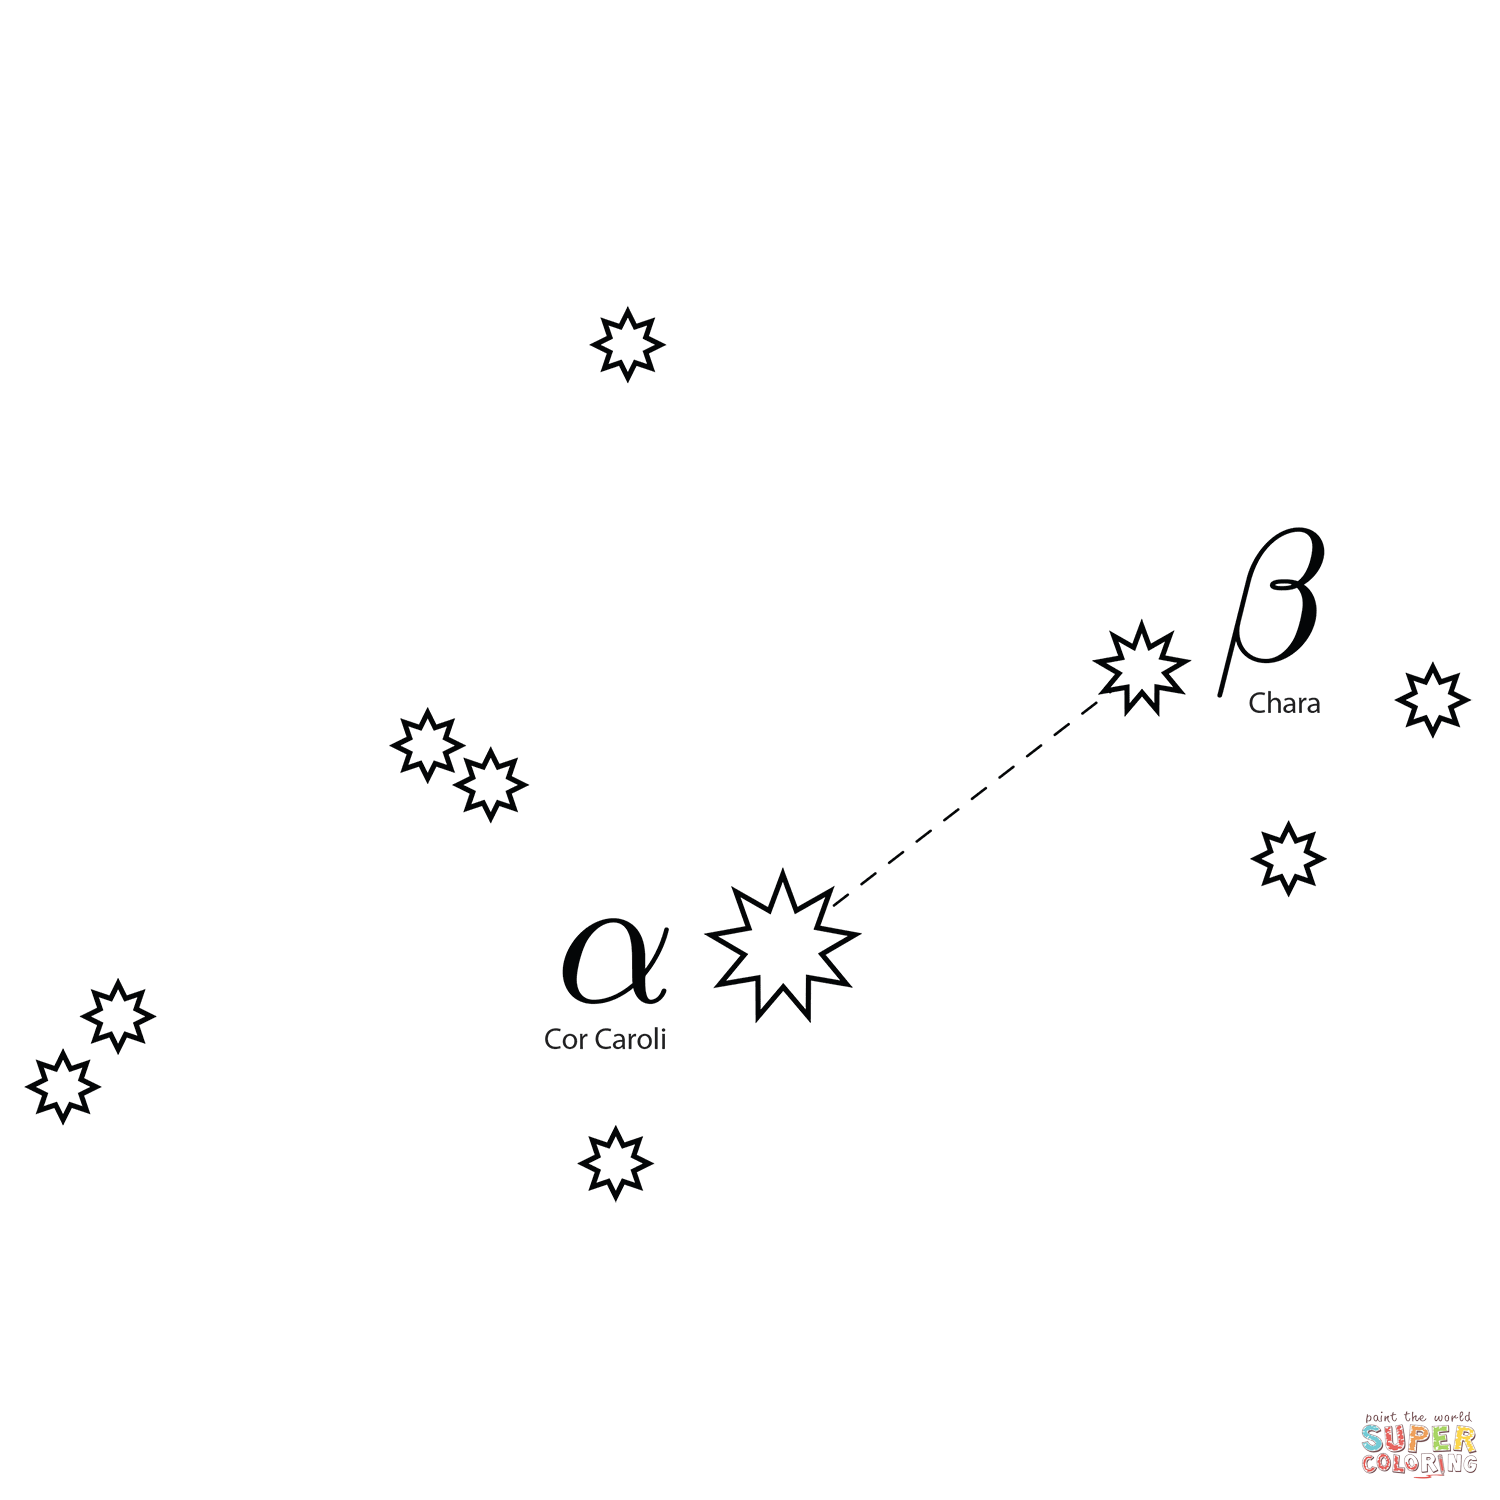 Canes Venatici Constellation Coloring Page